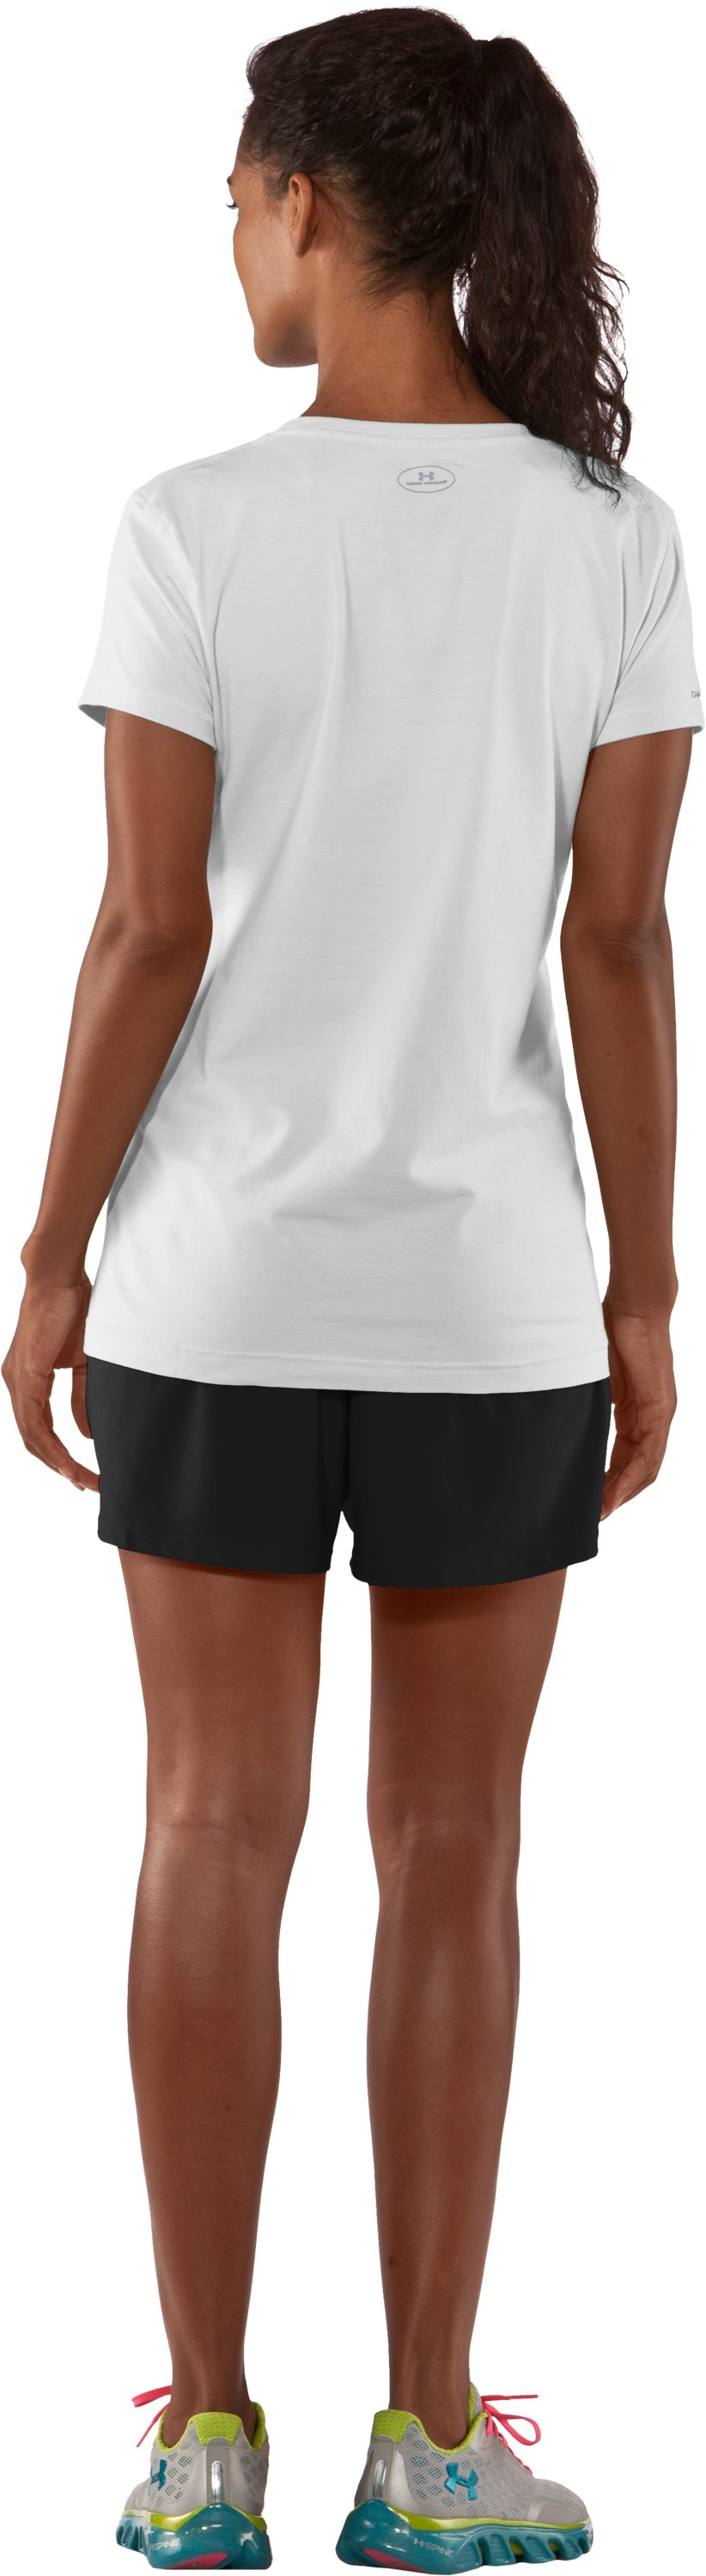 Women's Charged Cotton® Sassy Scoop T-Shirt, White, Back